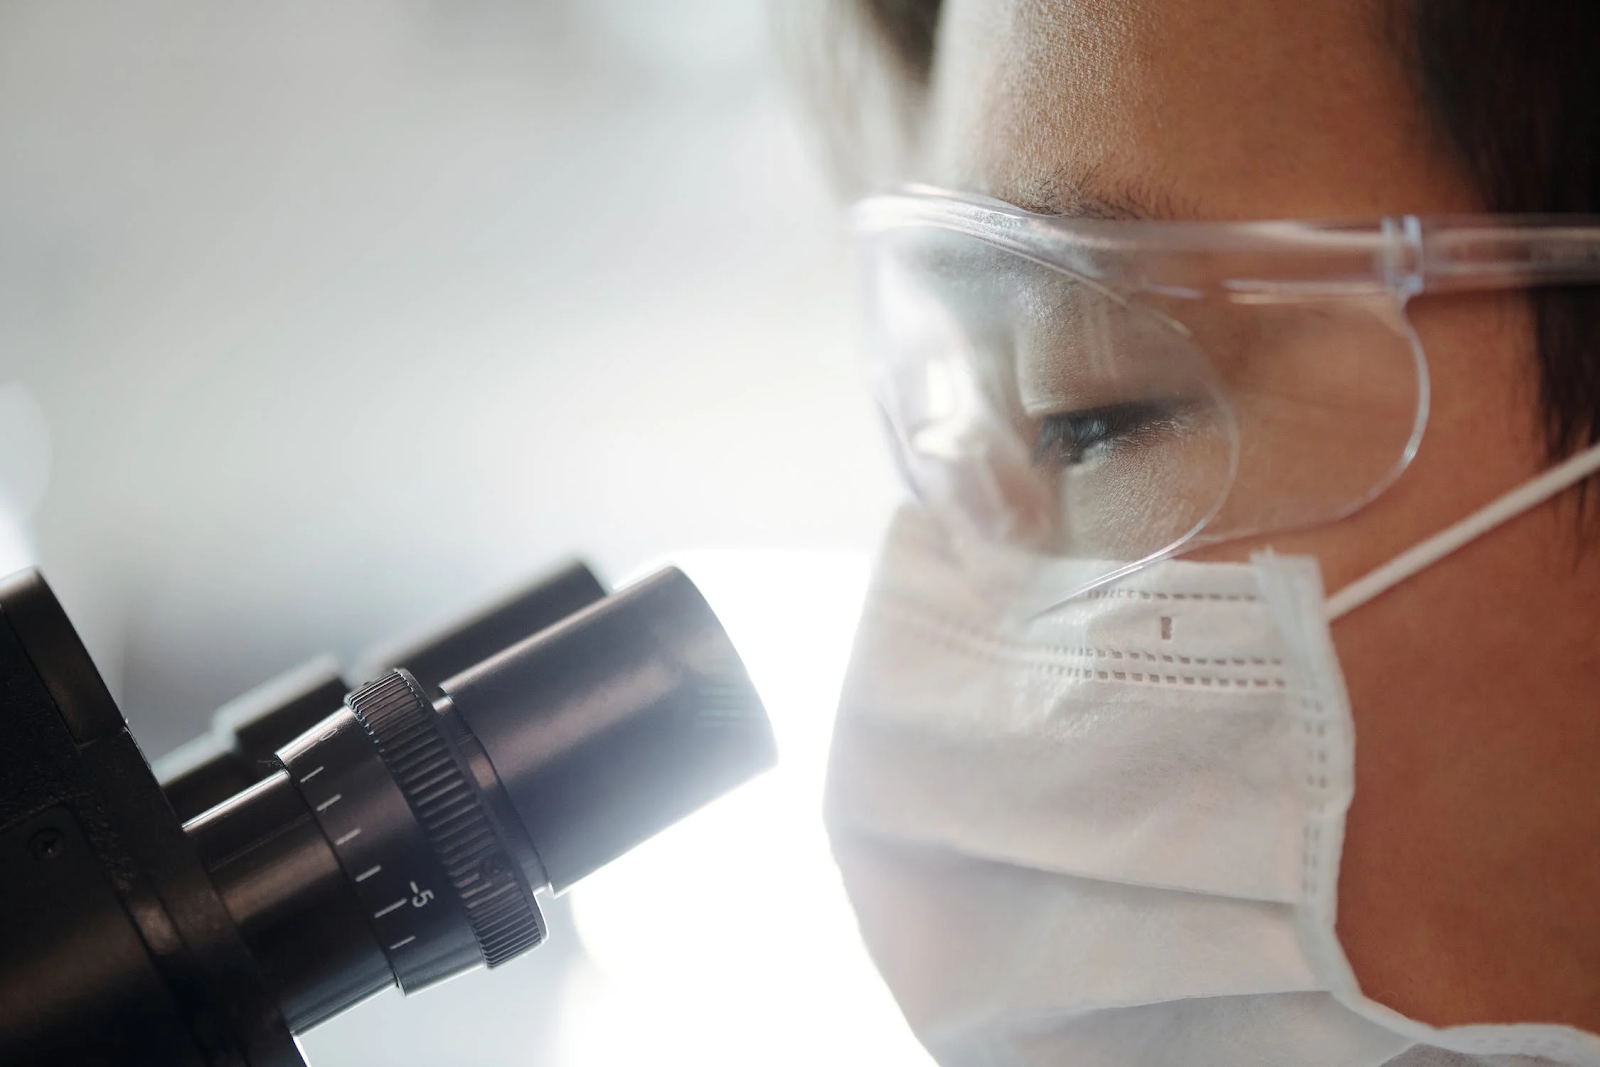 A close-up image of a researcher wearing both safety goggles and a mask looking into a microscope.